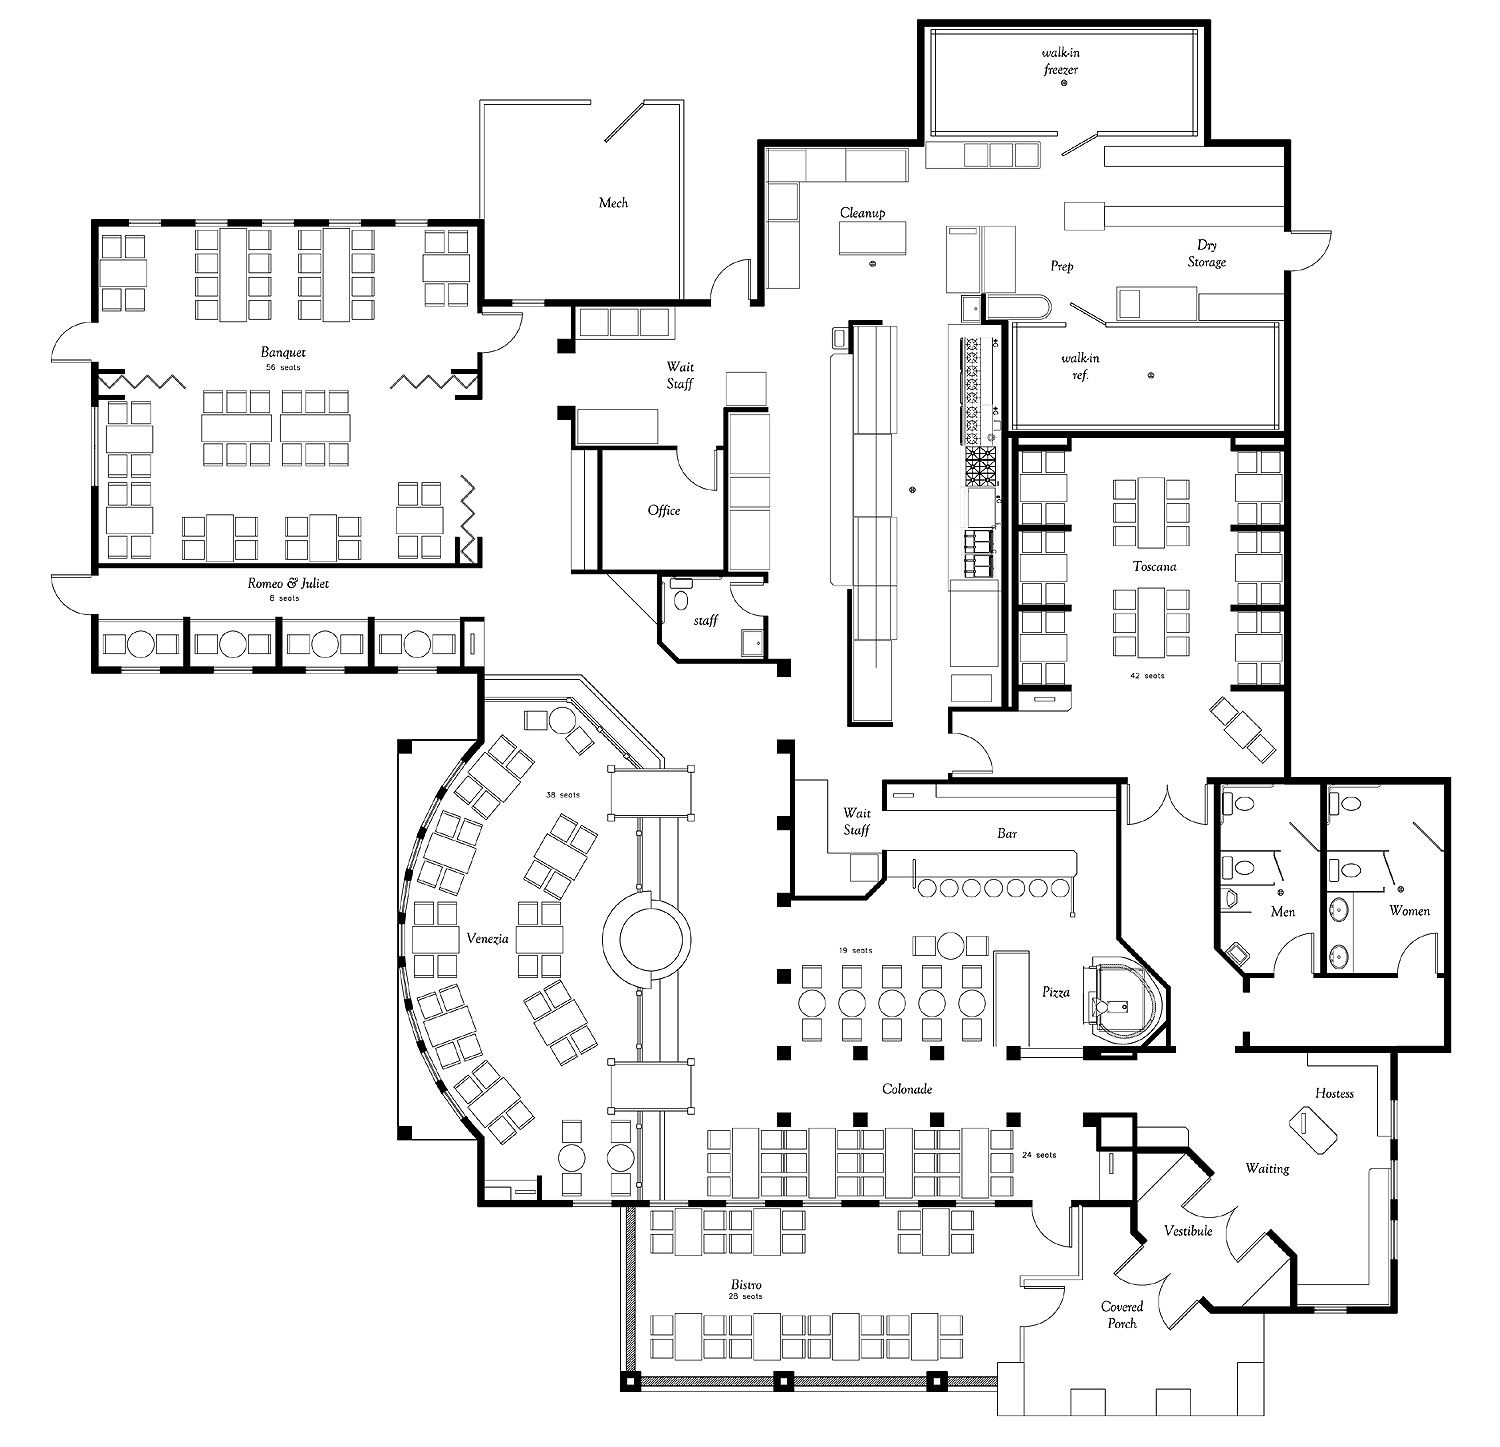 Restaurant Kitchen Plans Layouts: Home--Floorplans: Commercial Properties